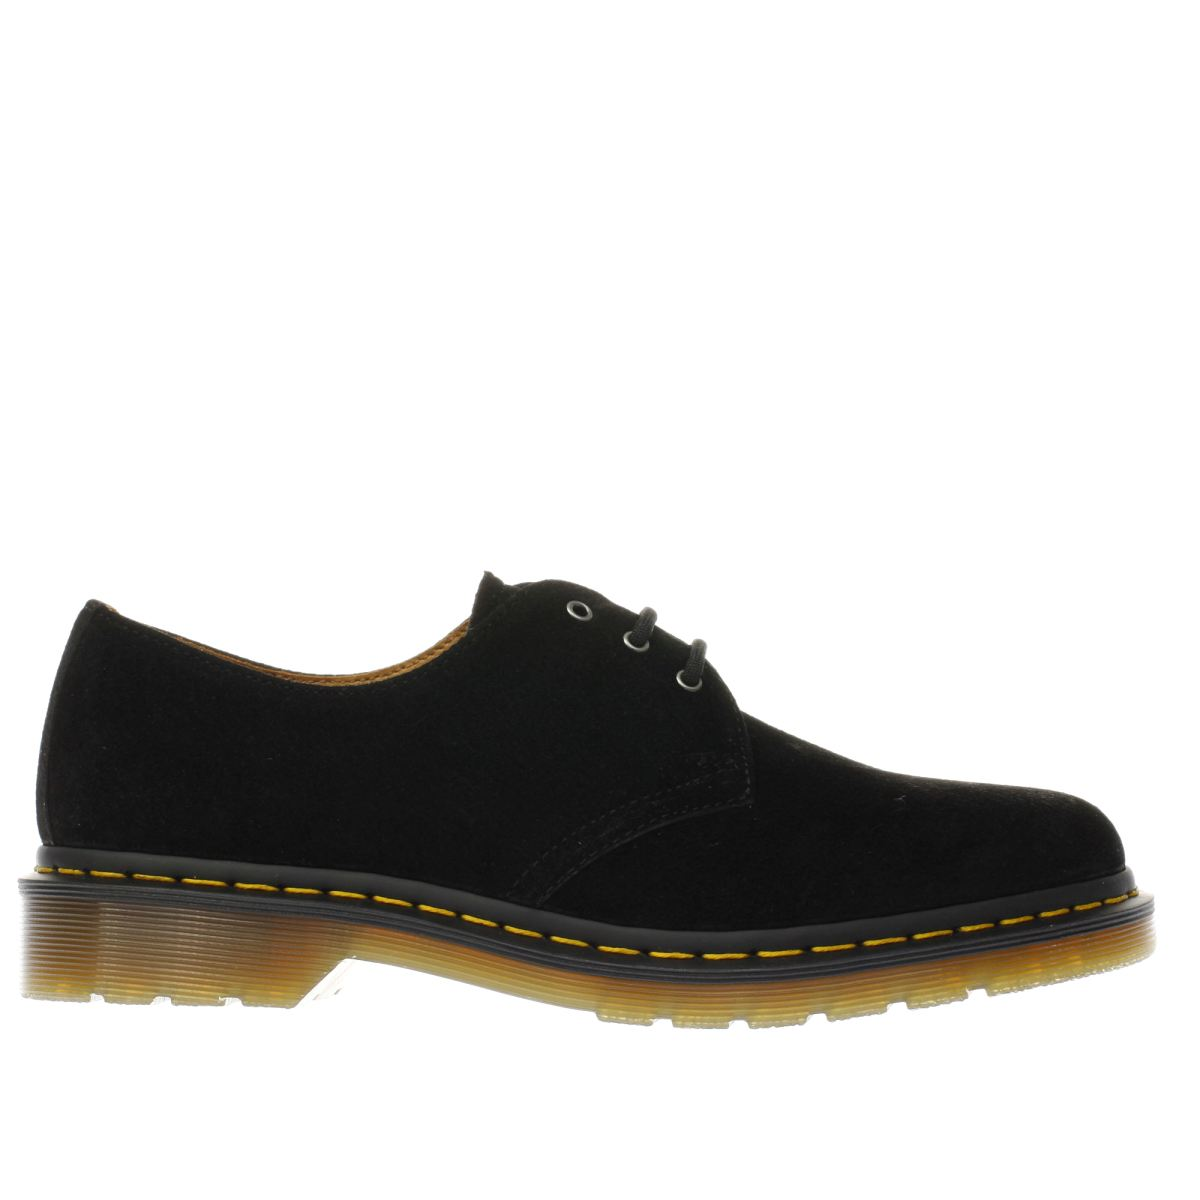 dr martens black 1461 3 eye shoes